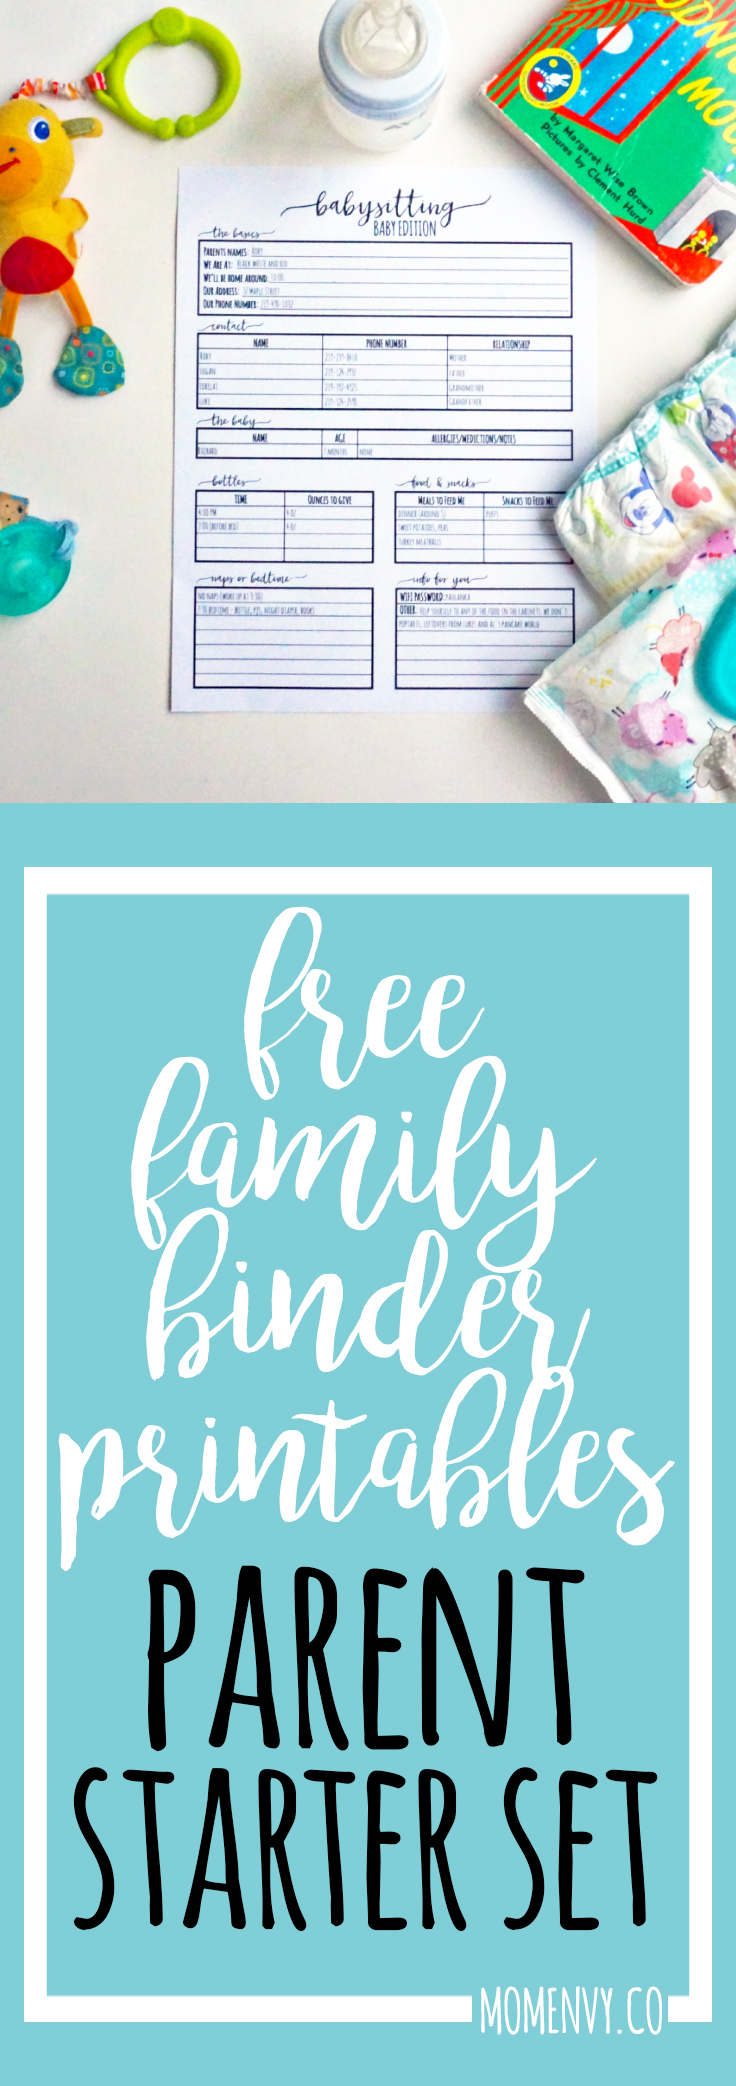 download the free parent starter kit today free daycare forms babysitter forms emergency